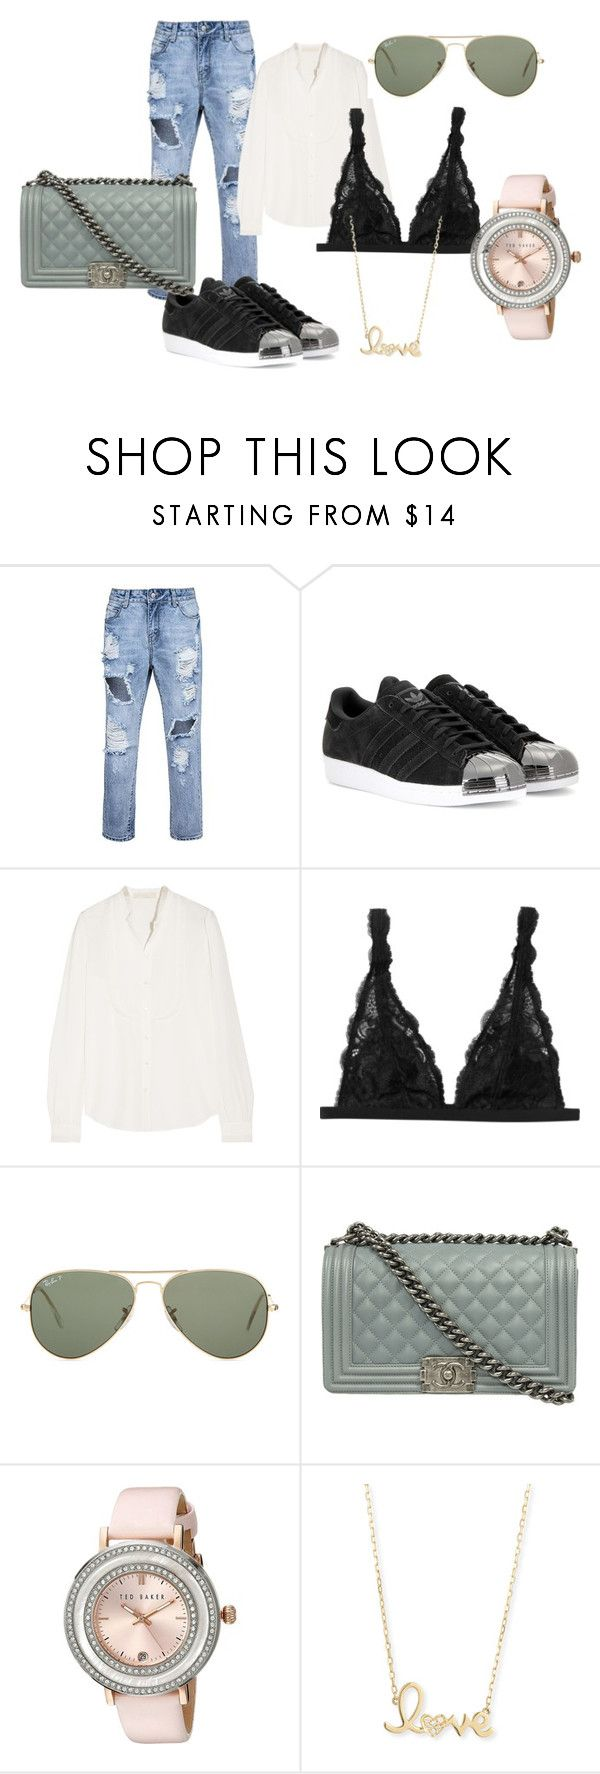 """date..."" by ve-safarova on Polyvore featuring adidas, Vanessa Bruno, Monki, Ray-Ban, Ted Baker, Sydney Evan, women's clothing, women, female and woman"